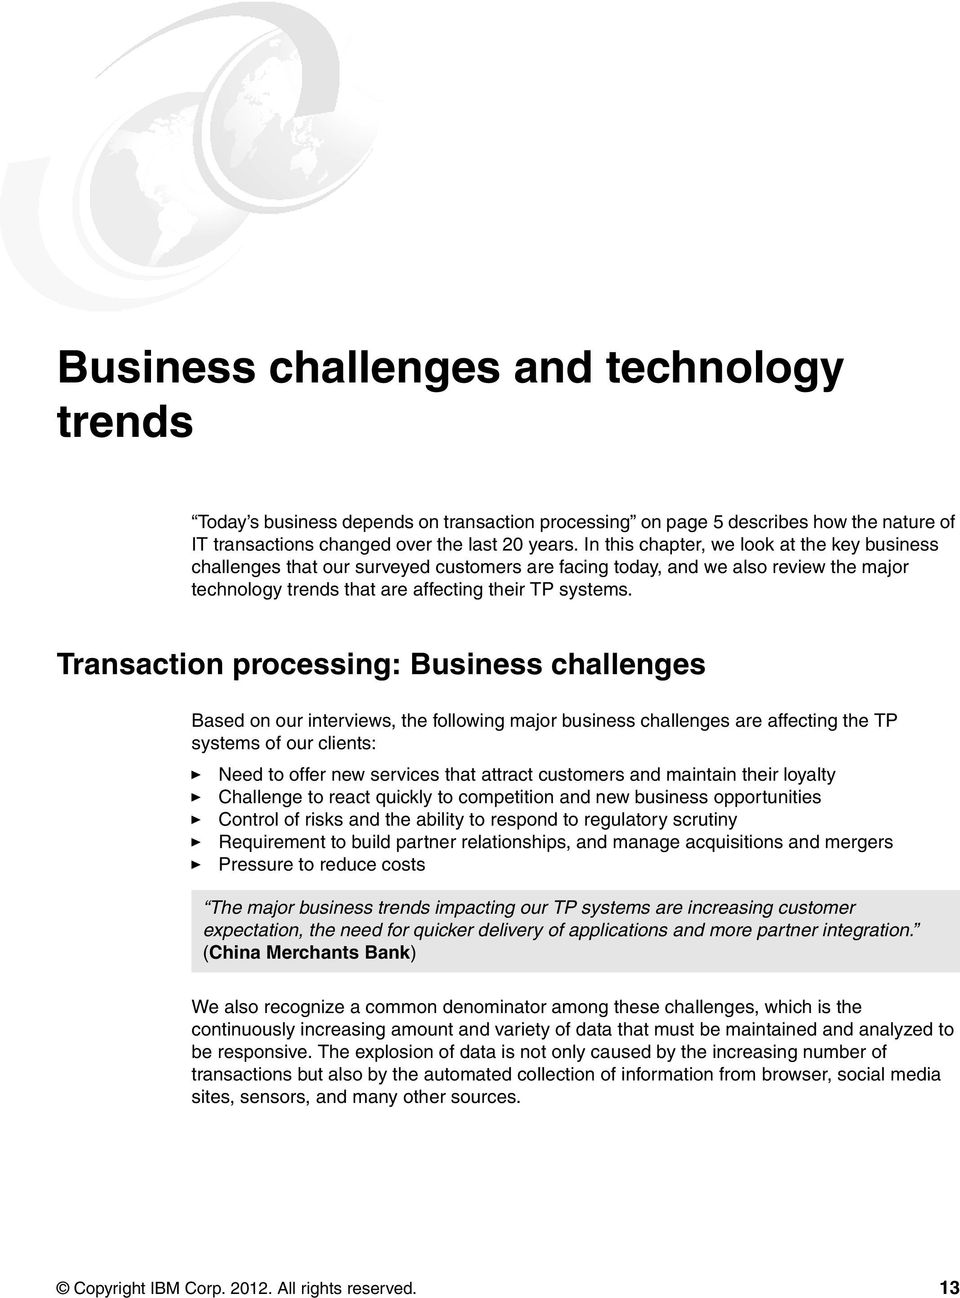 Transaction processing: Business challenges Based on our interviews, the following major business challenges are affecting the TP systems of our clients: Need to offer new services that attract